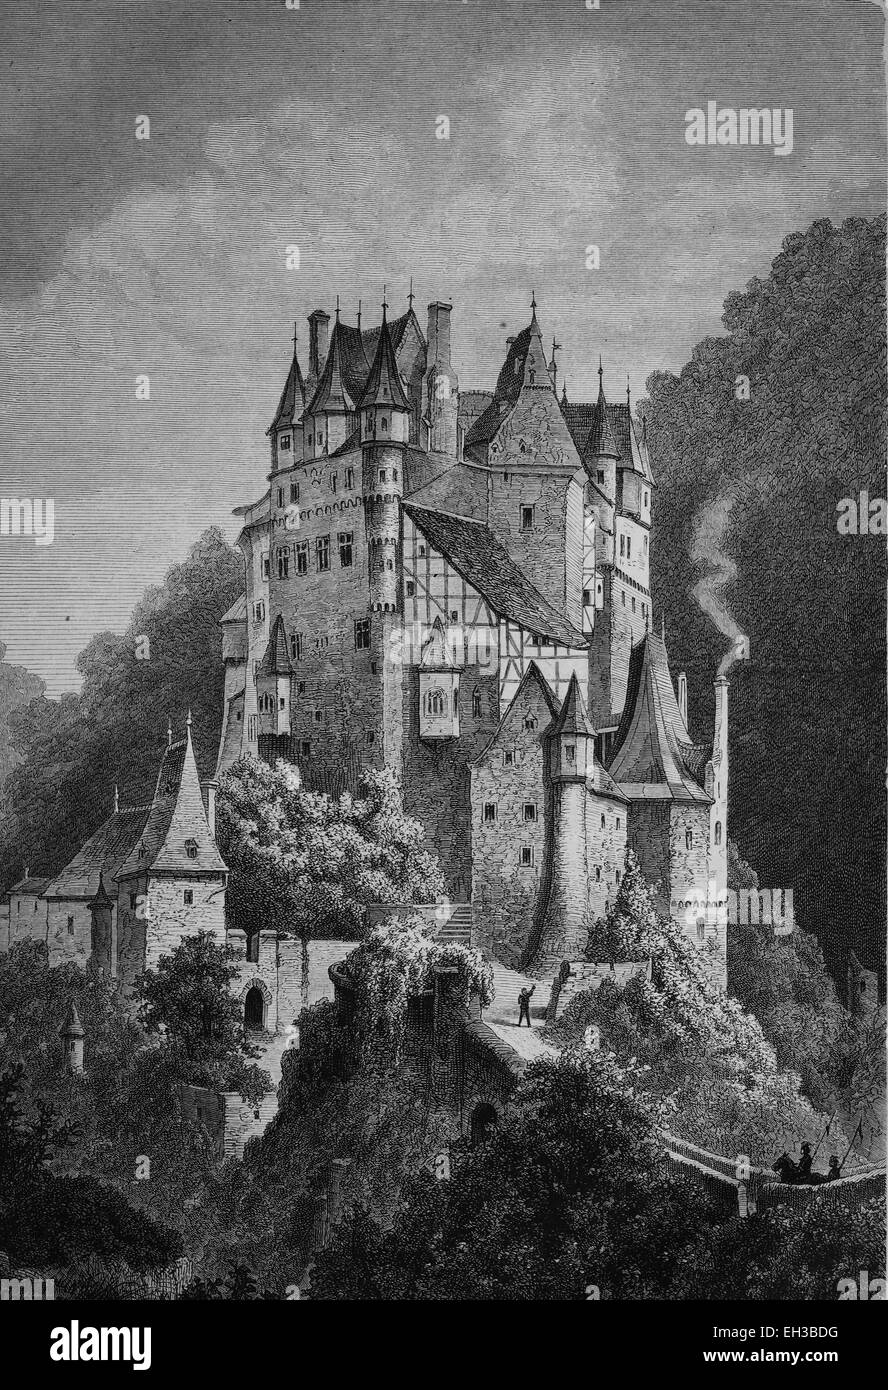 Burg Eltz Castle, Rhineland-Palatinate, Germany, historical book illustration from the 19th Century, steel engraving, - Stock Image